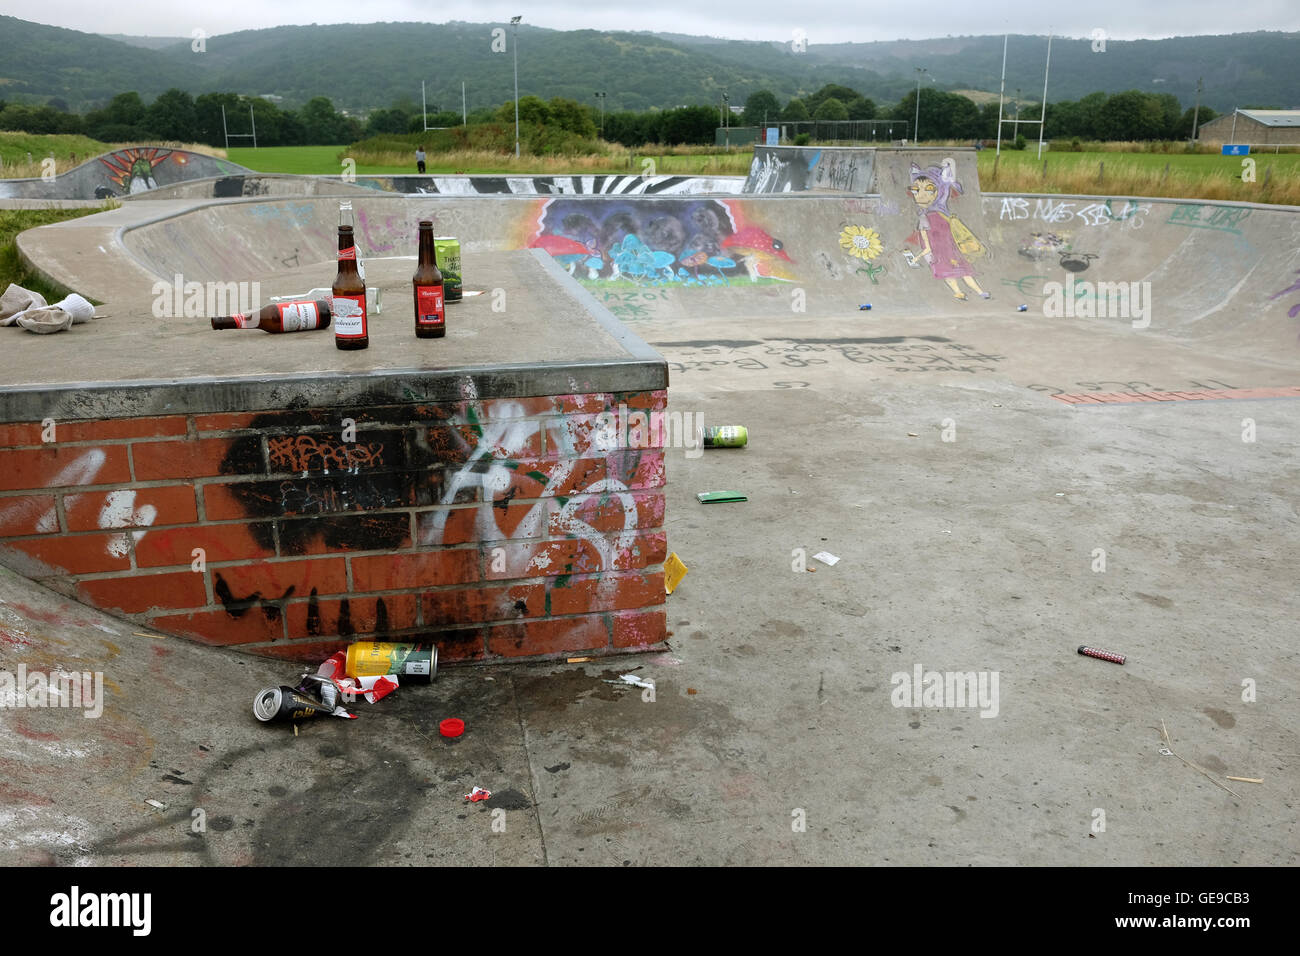 Bottles a rubbish left at the skate park after an outdoor party by village young people. 23rd July 2016 - Stock Image